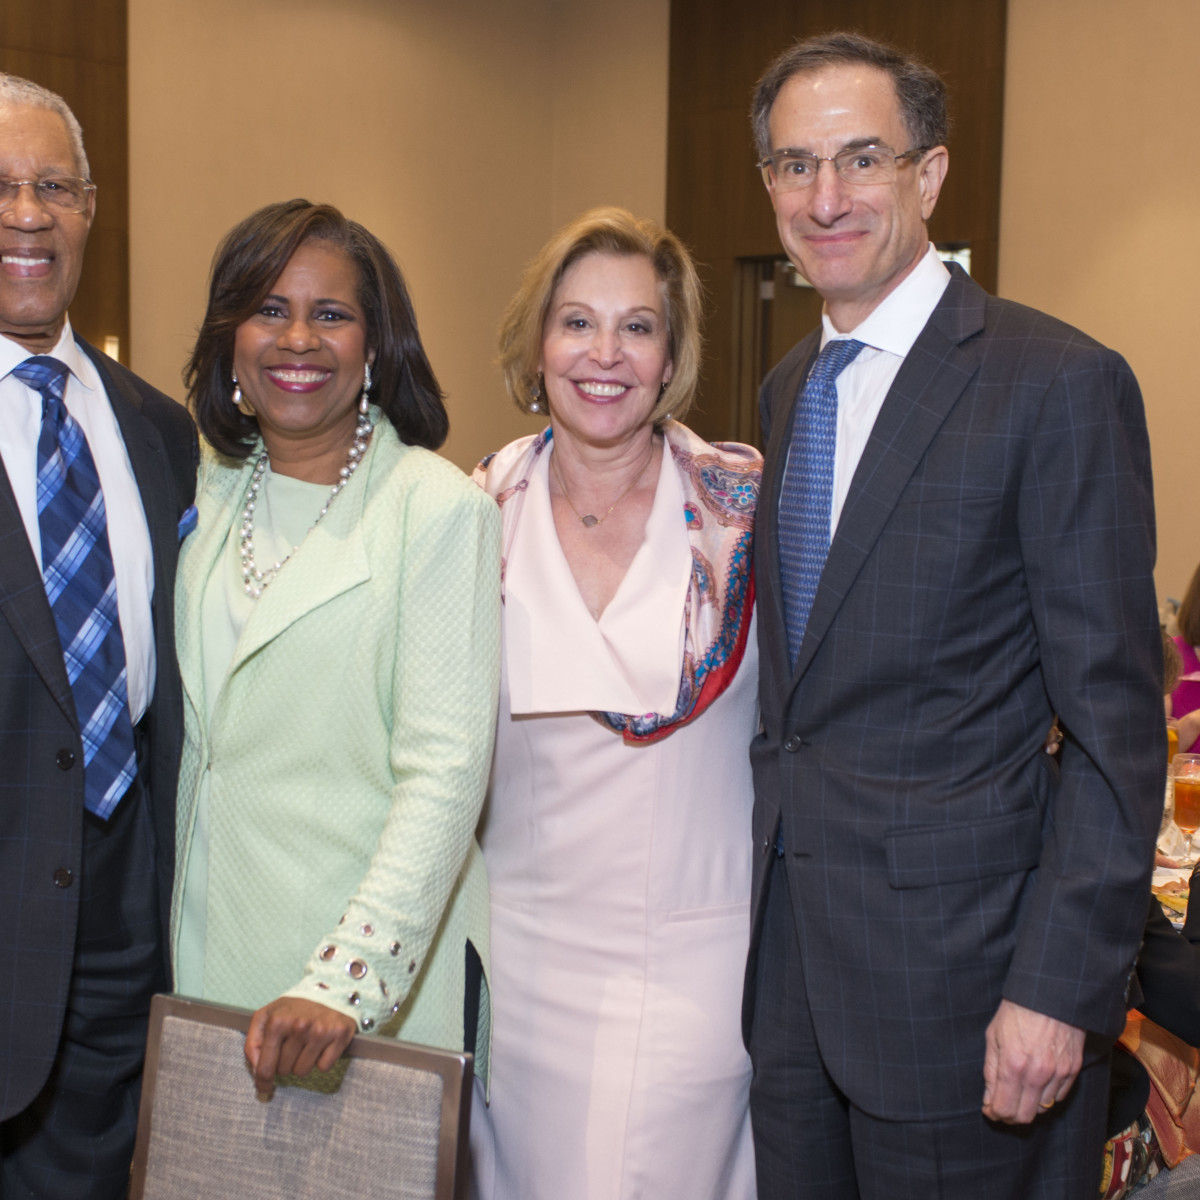 Houston, DePelchin Children's Center Families for Kids Luncheon, May 2016, Reverend Bill Lawson, Melanie Lawson, Doe Florsheim, Henry Florsheim